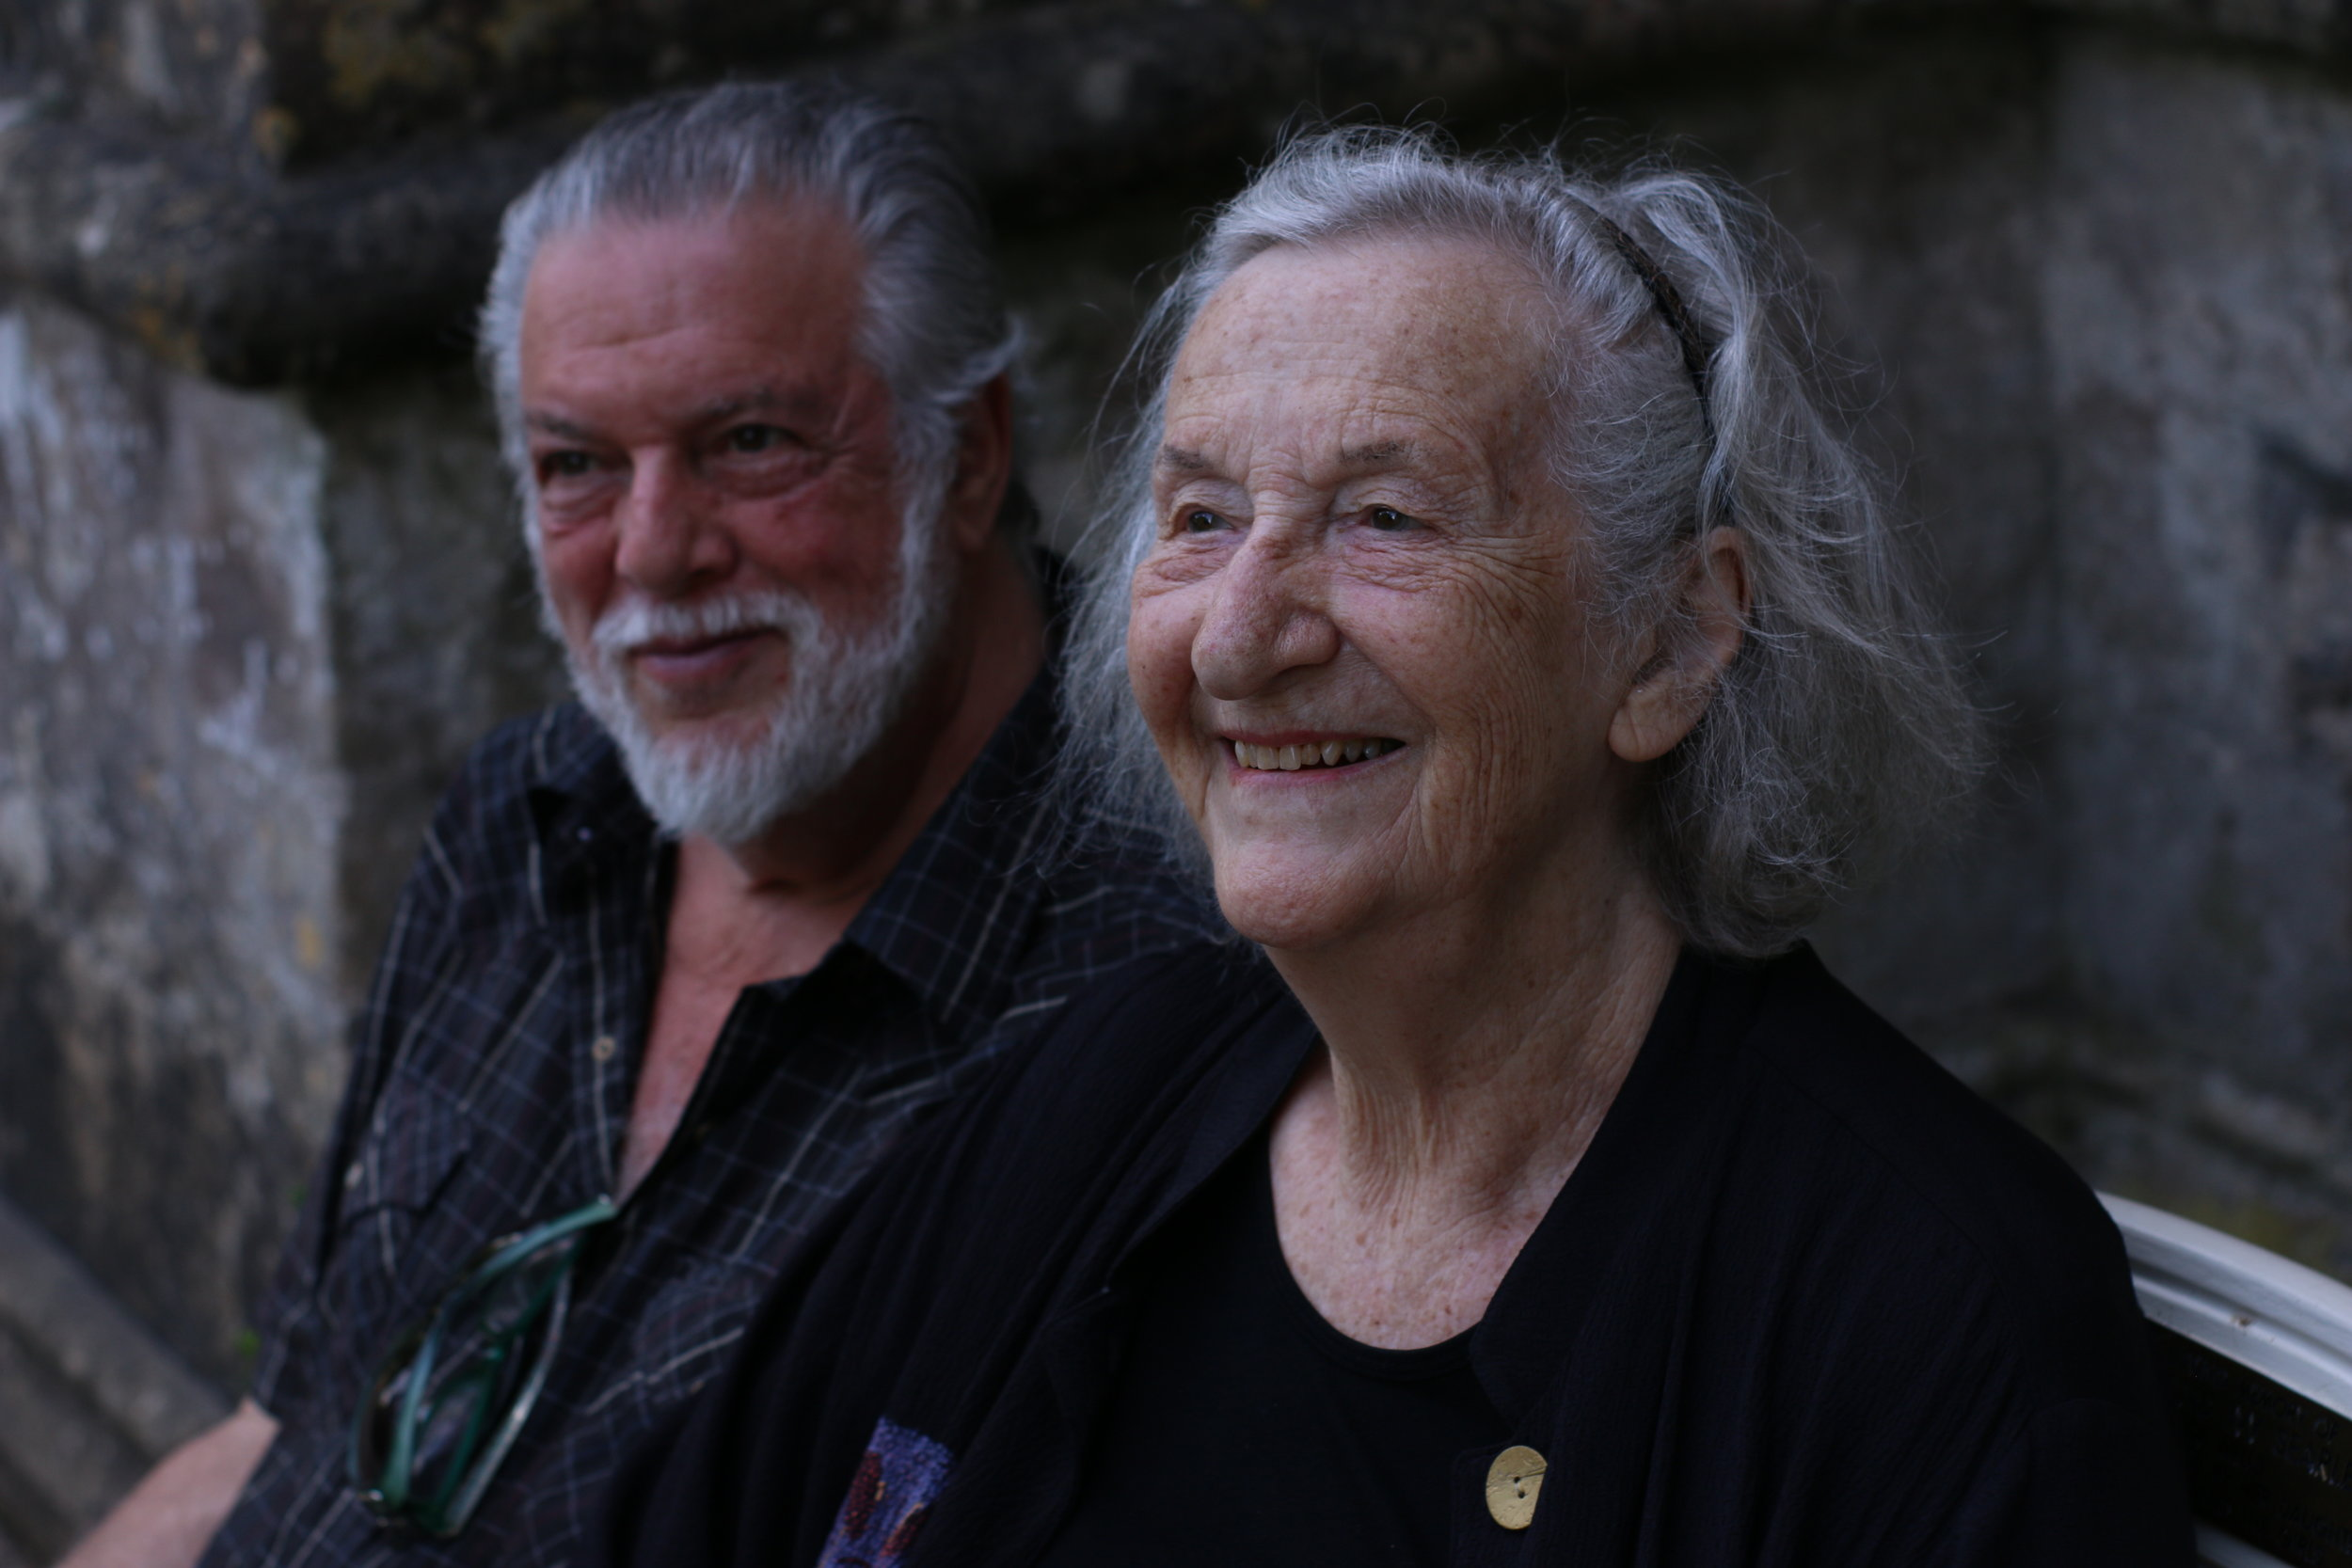 Thea Musgrave & Peter Mark (2018) Wells Cathedral. Photo by Thomas Le Brocq